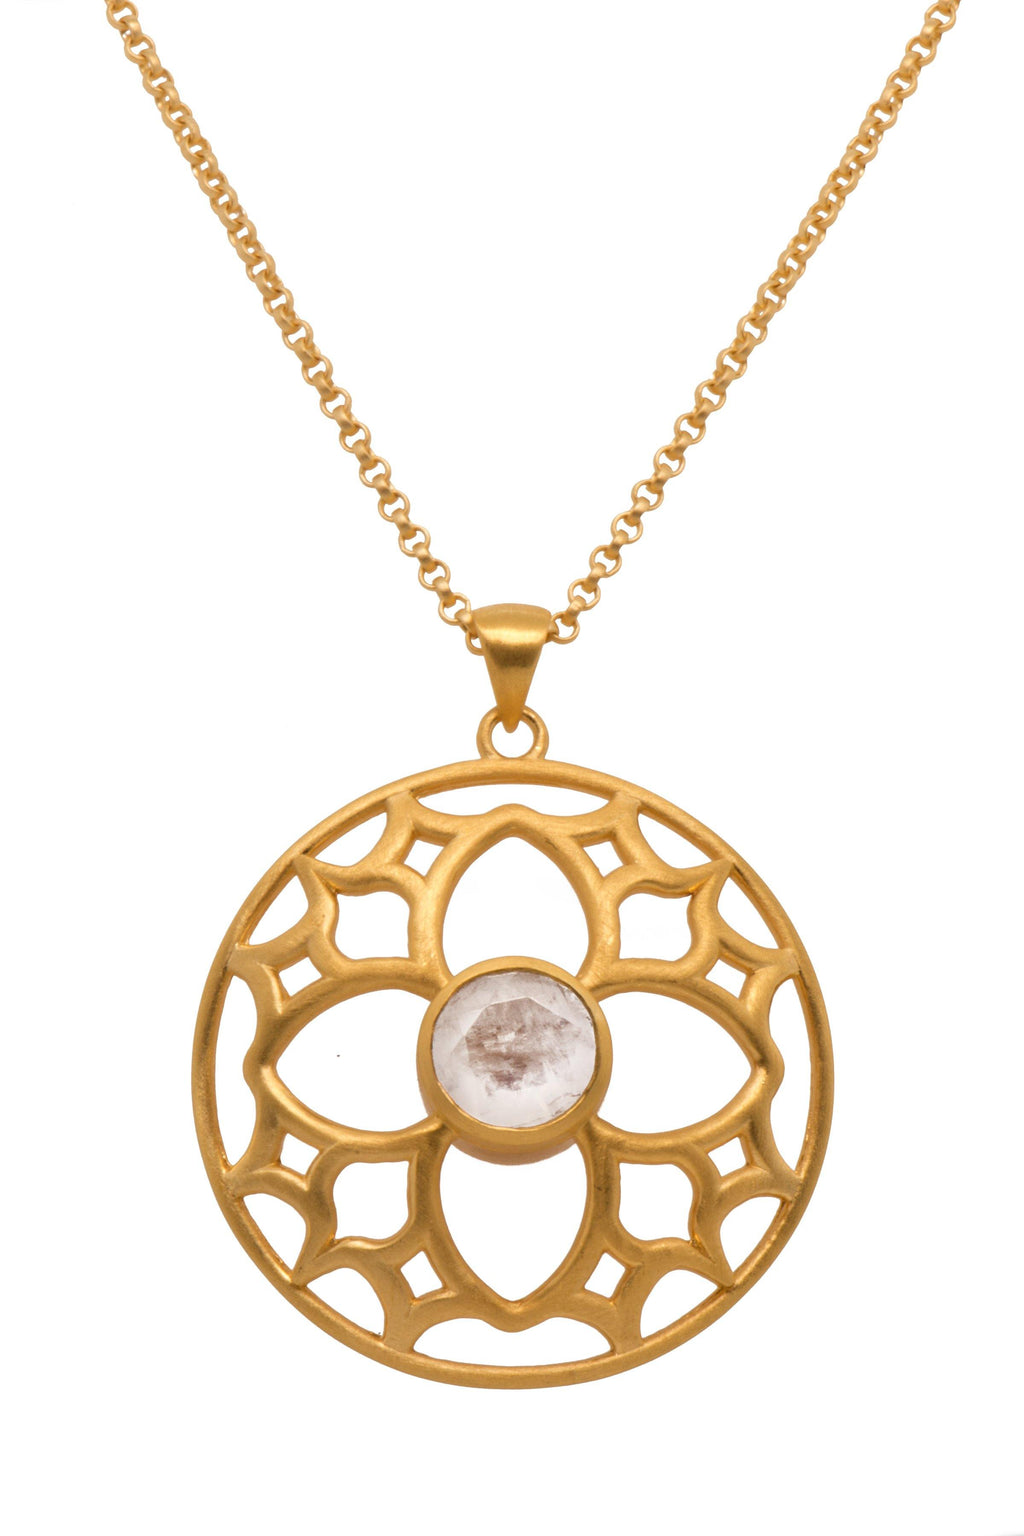 JOYFULP1RM PENDANT- JOYFUL CIRCLE 40MM RAINBOW MOONSTONE 24K GOLD VERMEIL